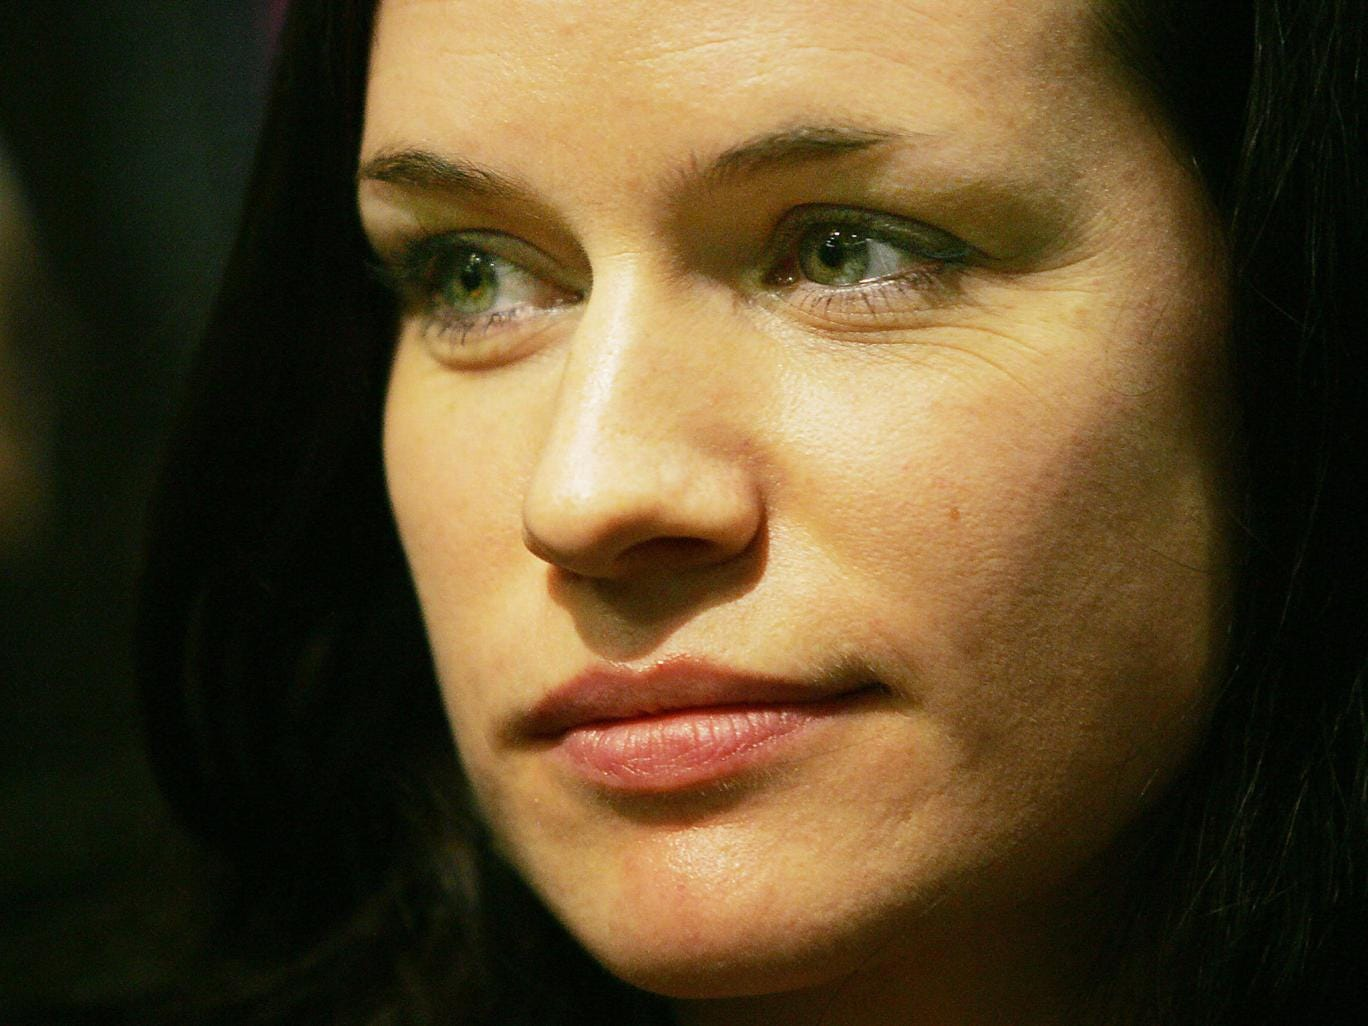 Novelist Sarah Hall is one of the judges for the inaugural Folio Prize